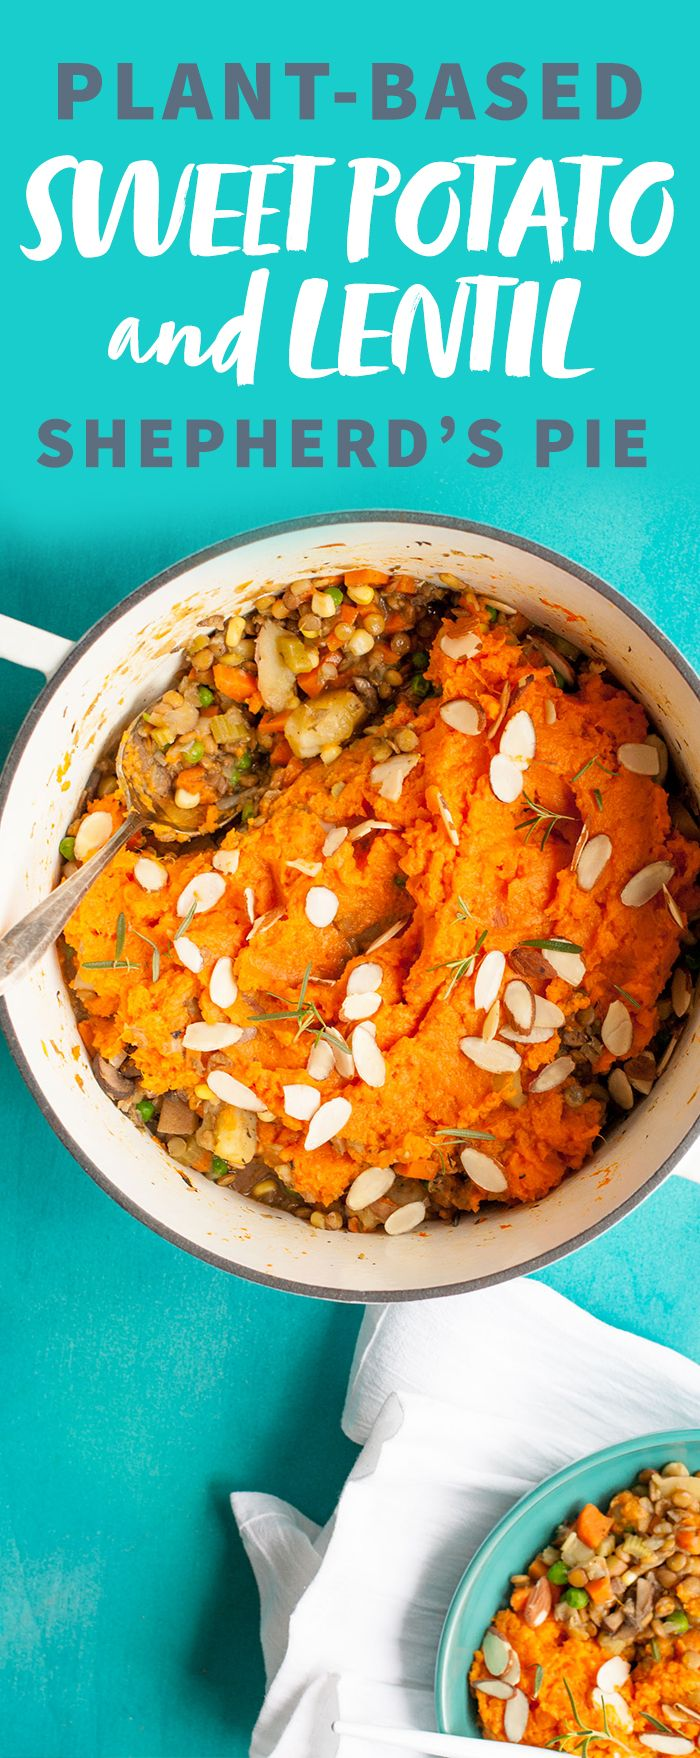 Sweet Potato and Lentil Shepherd's Pie is healthy comfort food epitomized, and the ultimate one pot wonder! Wholefully